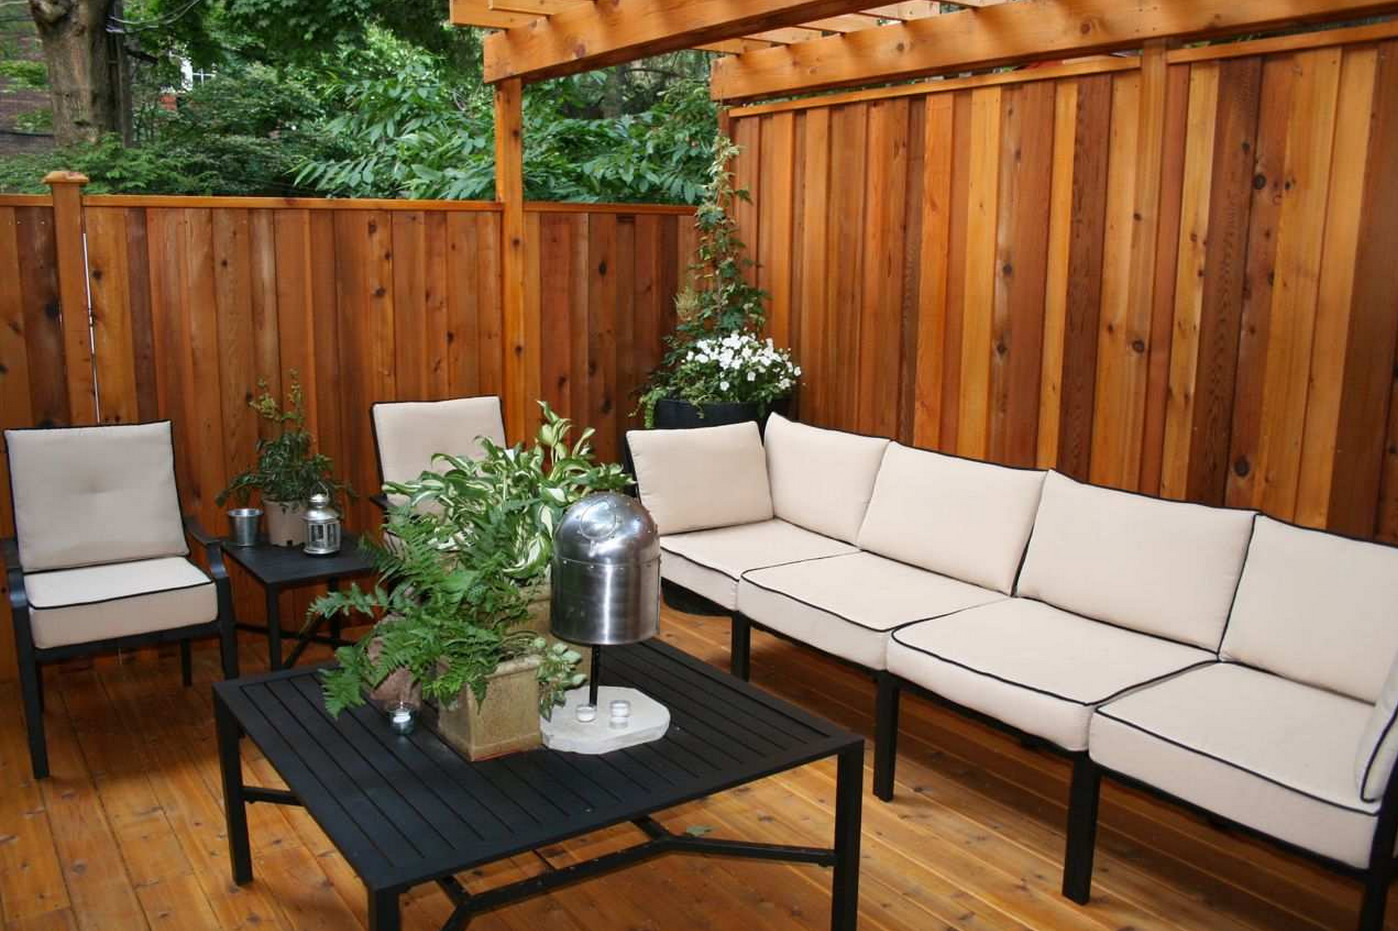 Deck with a privacy wall interesting ideas for home for Small backyard privacy ideas